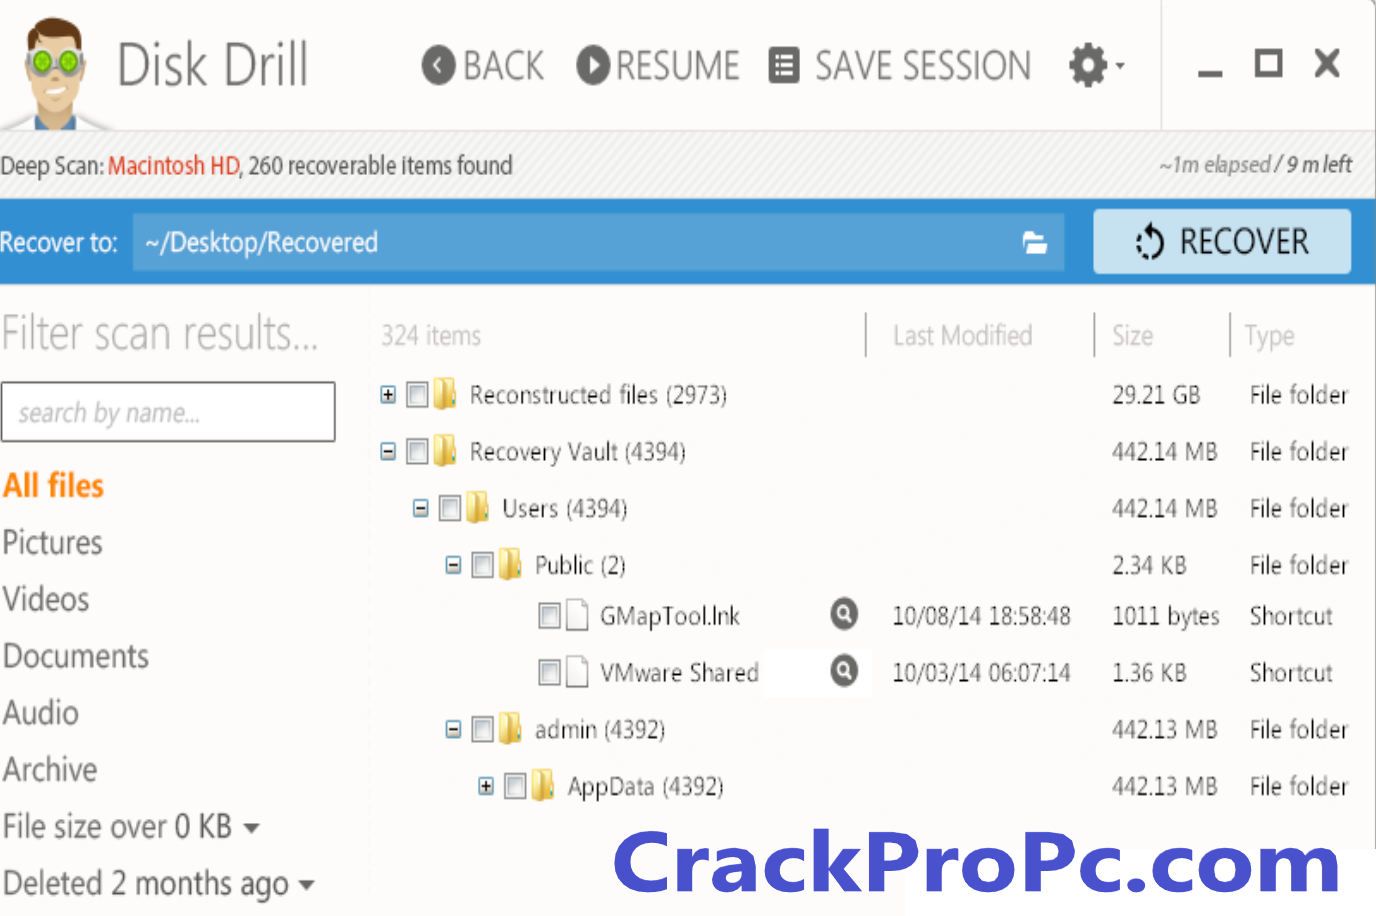 Disk Drill Pro 4.1.555.0 Crack Activation Code Latest Free Download 2021